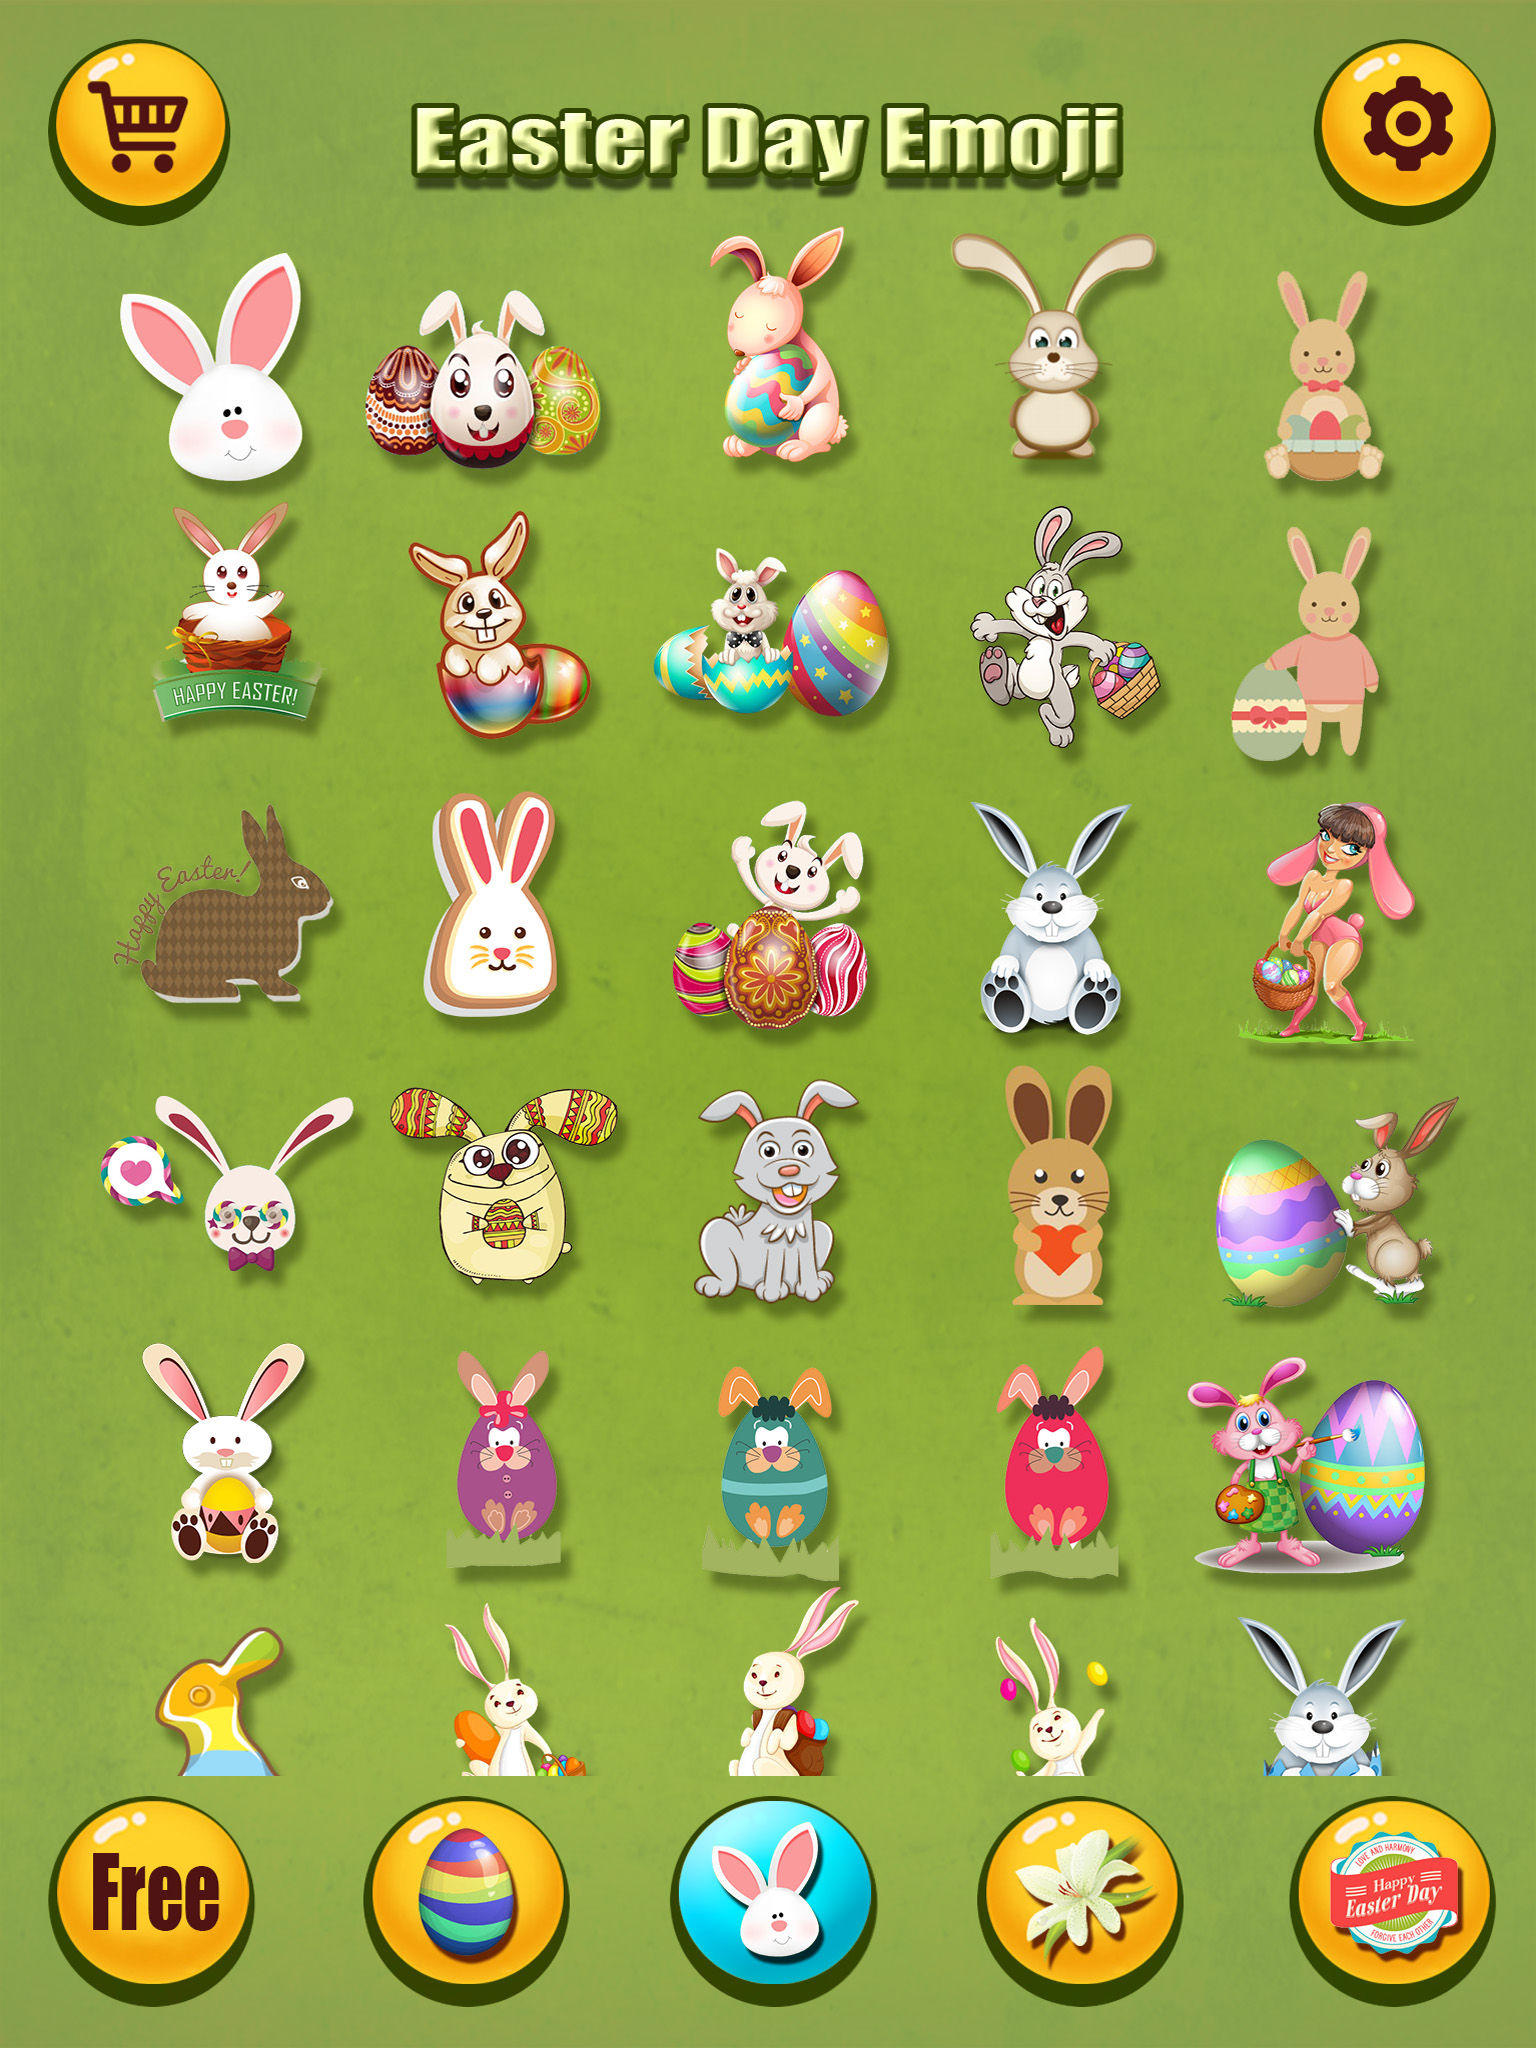 Happy Easter Emoji s Pro - Holiday Emoticon Sticker for